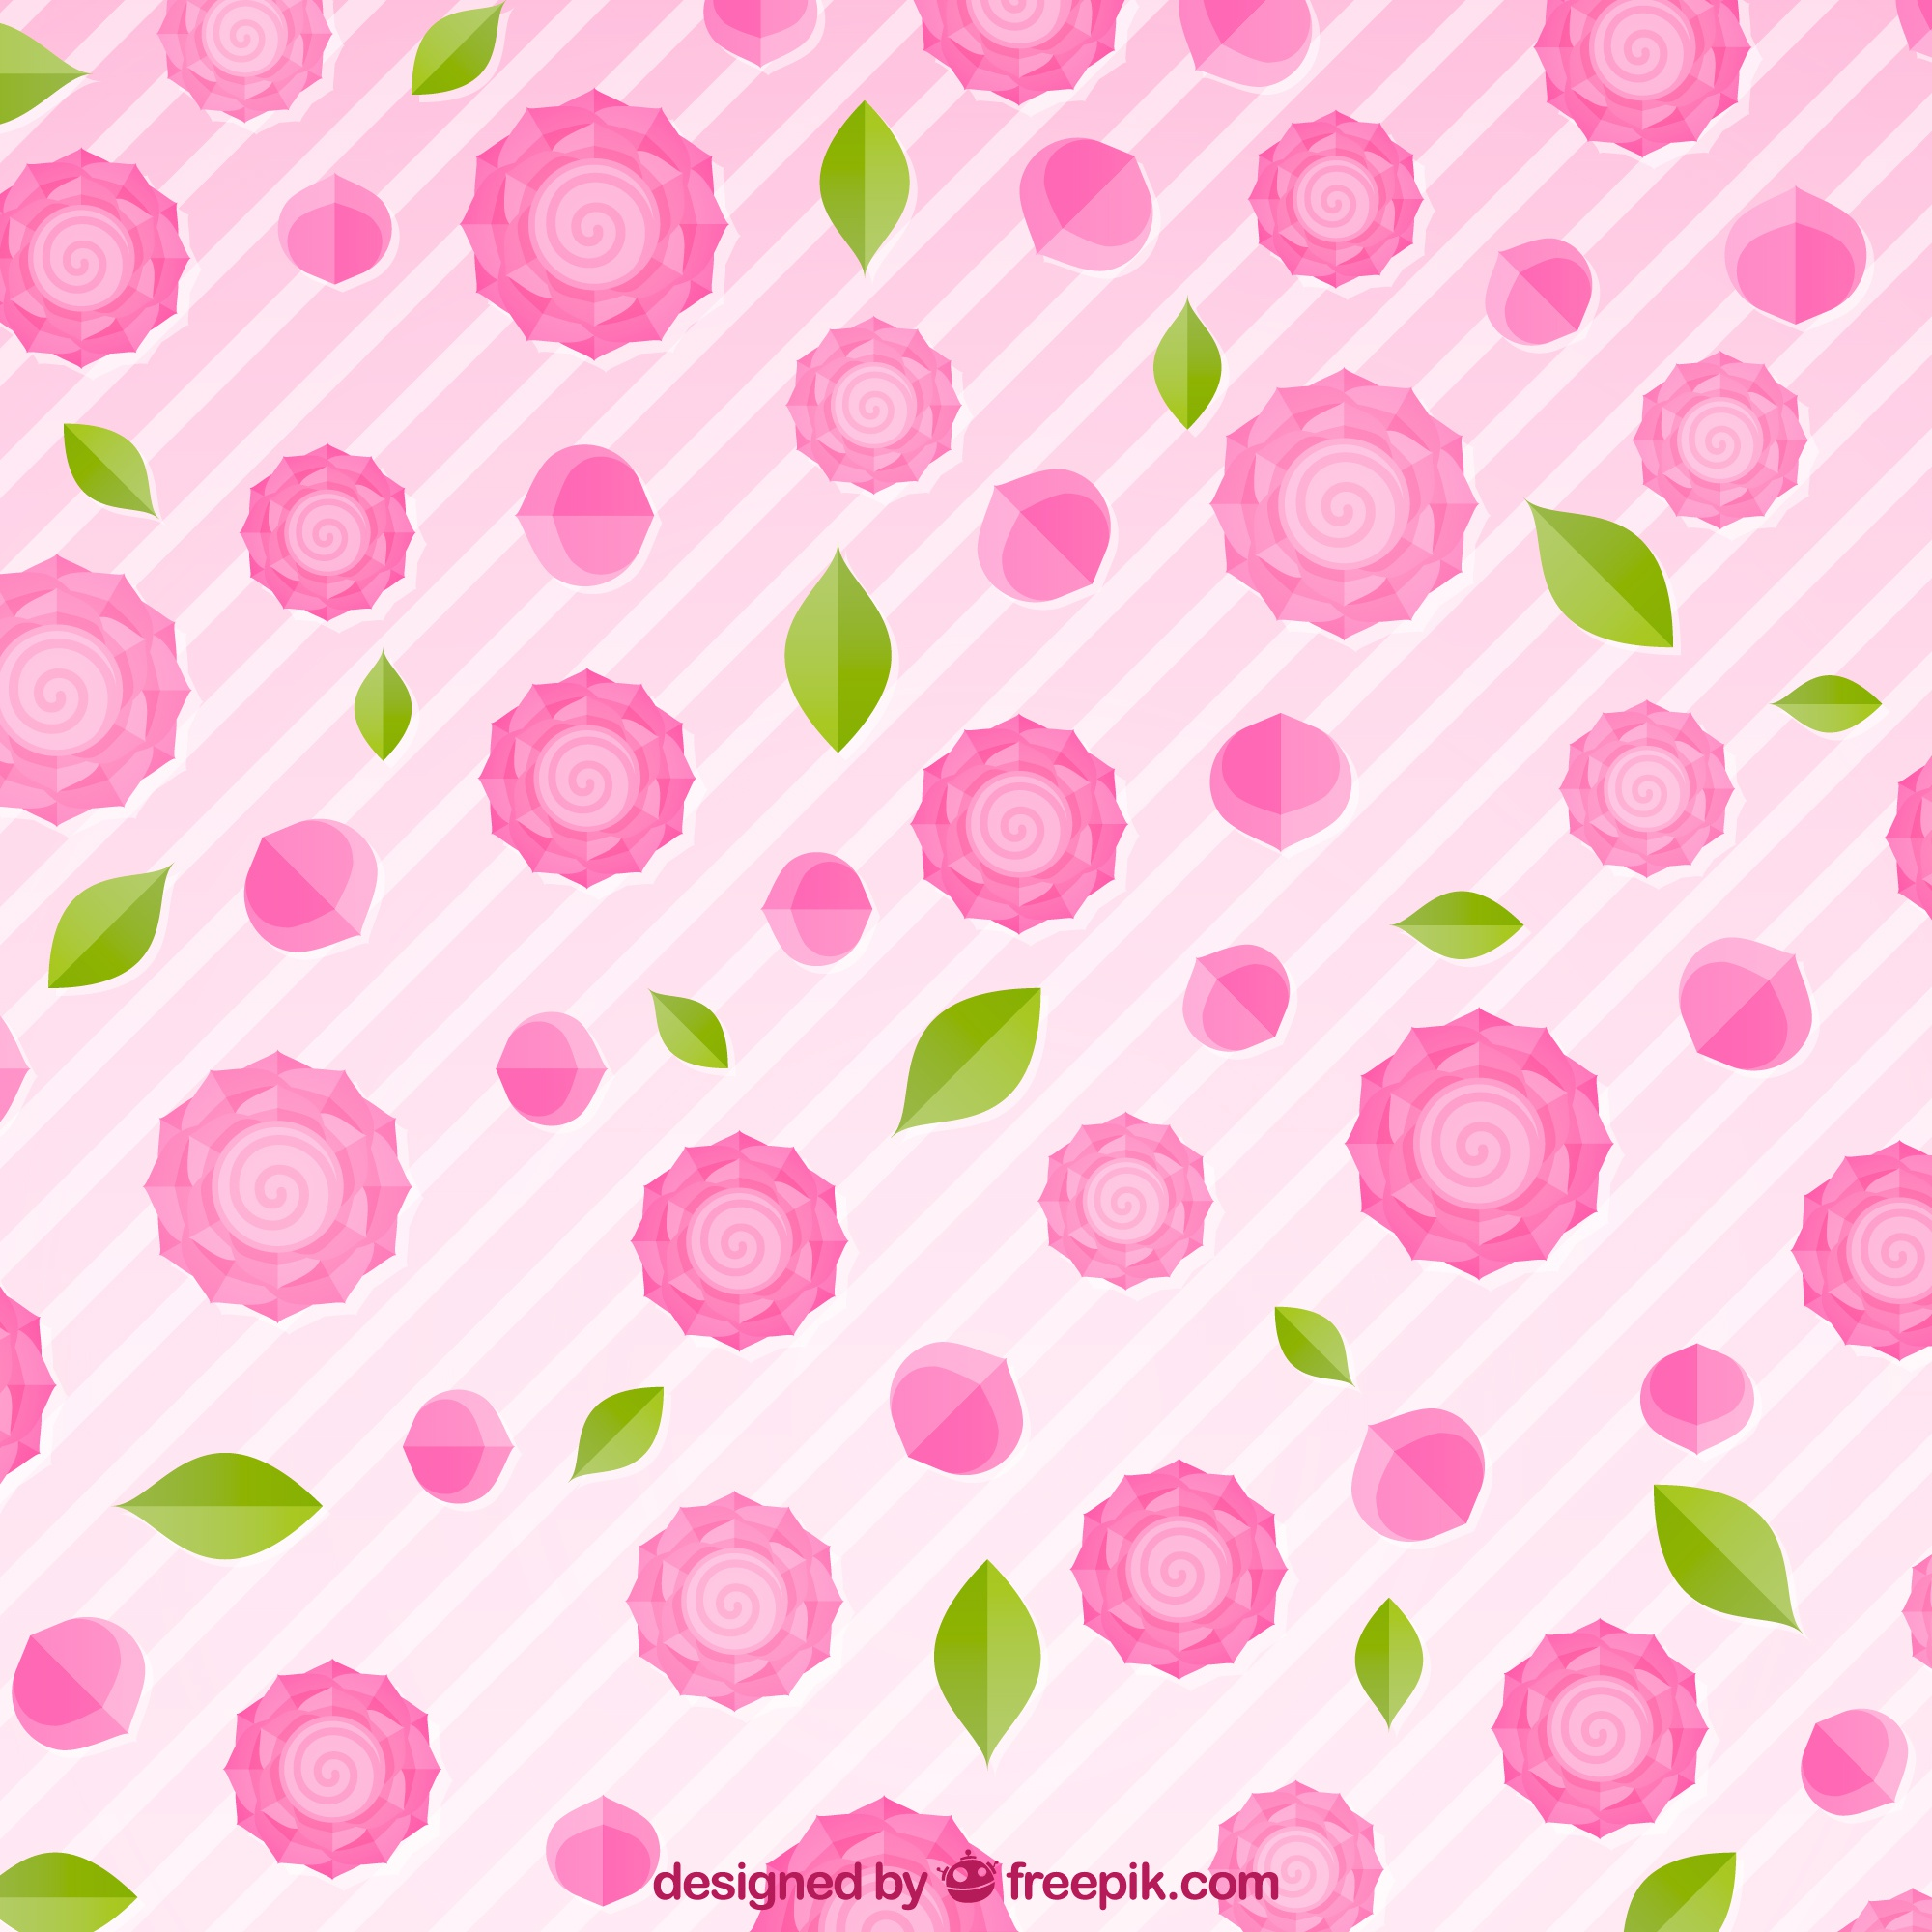 Striped background with pink roses